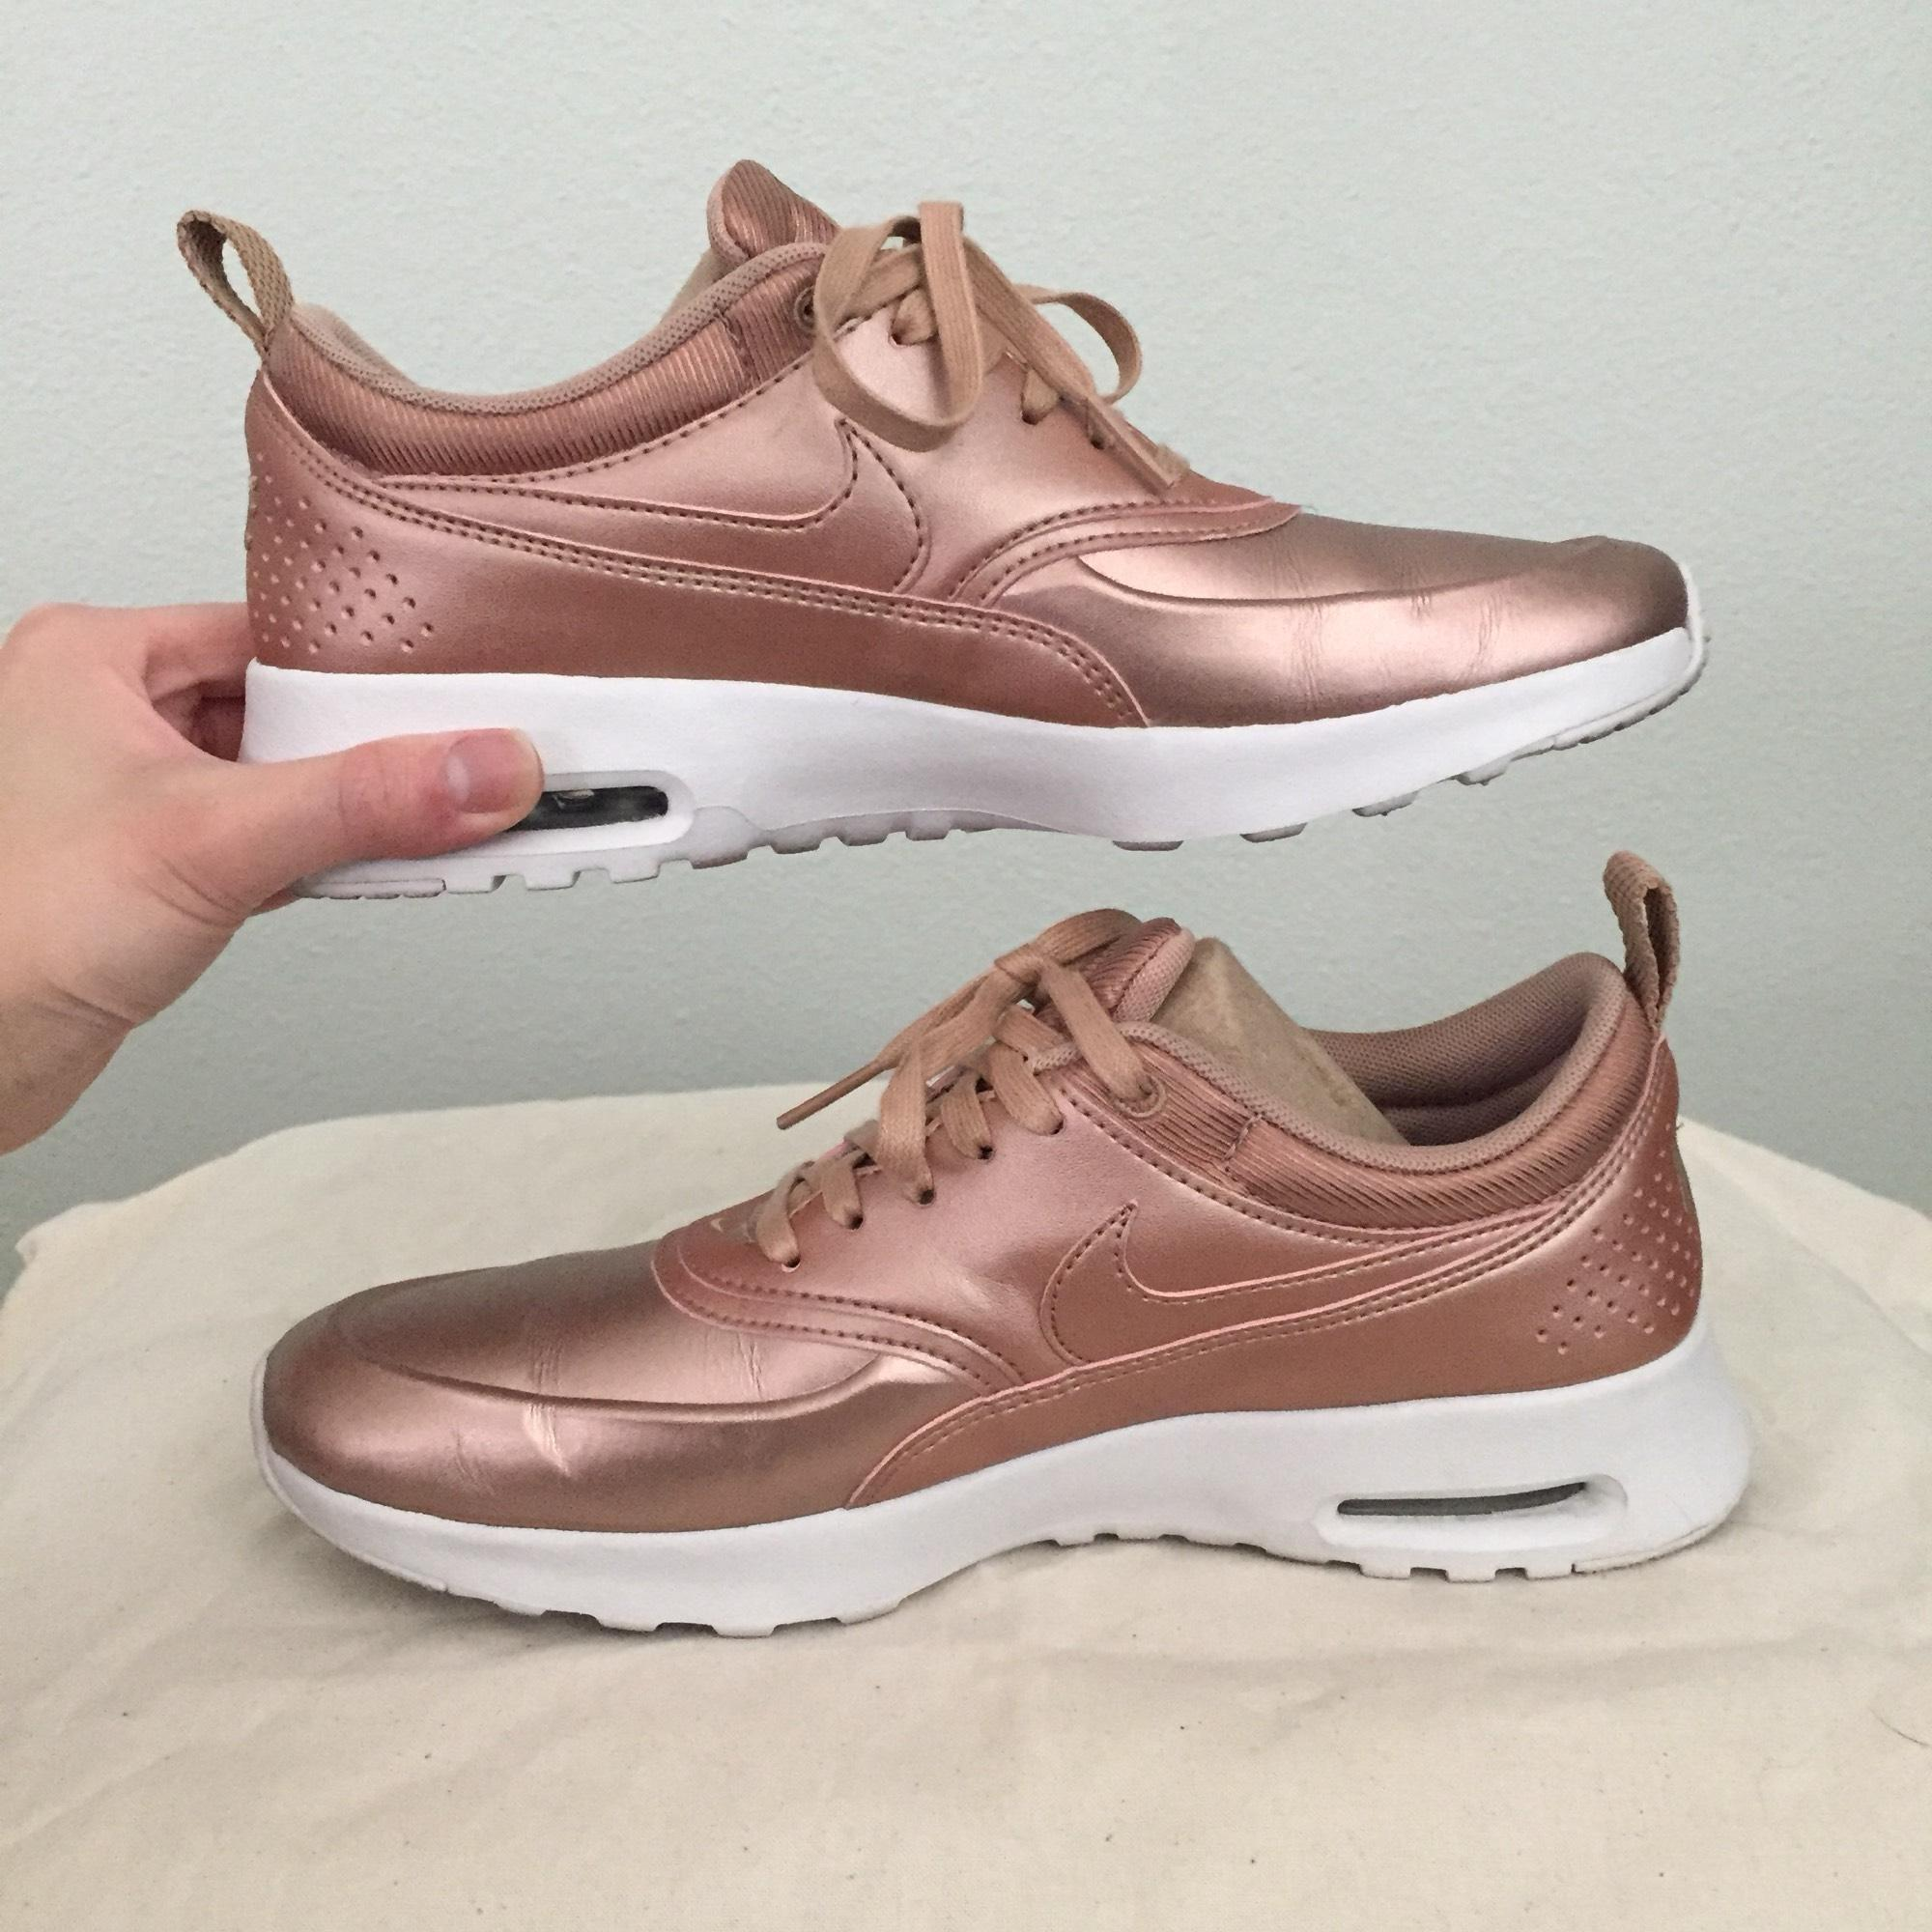 6a523095e89b2 ... good nike metallic rose gold air max thea womens sneakers size us 7  regular m b tradesy